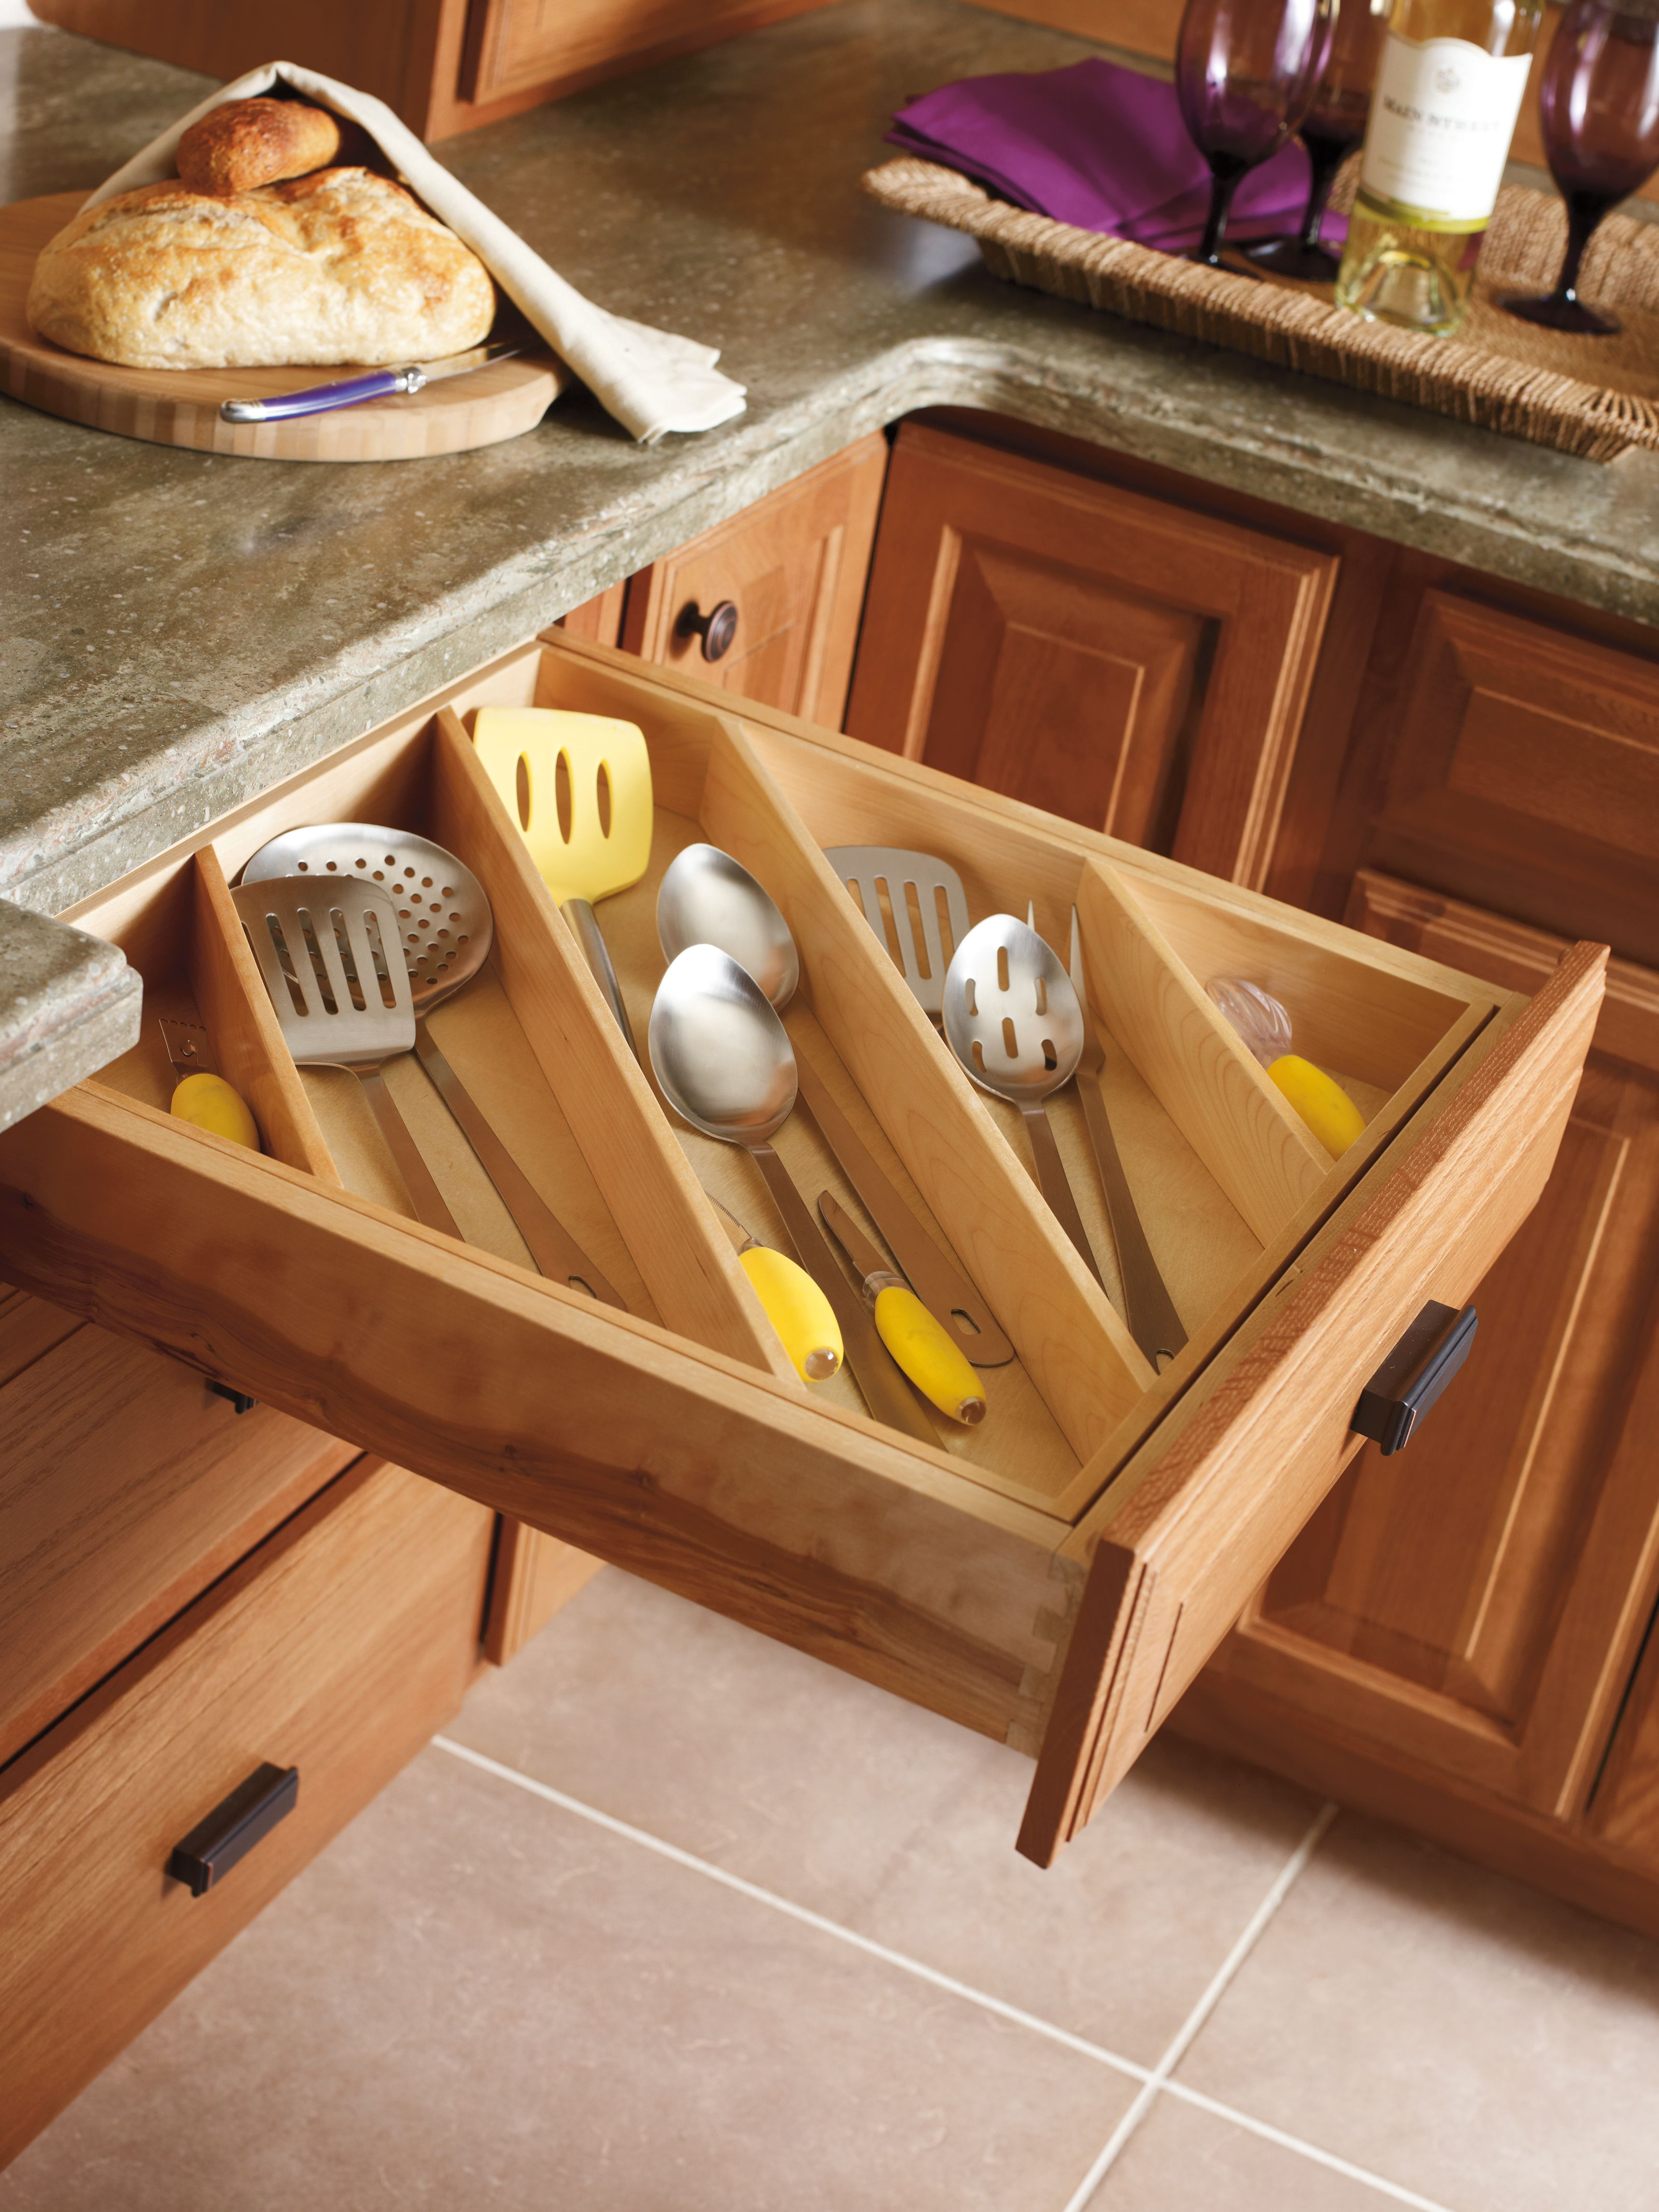 shelves and sliding charming uk drawers sugar bin us drawer examples with utensil oats cabinets i organizer display cabinet for departments rice need kitchen one utensils inserts flour filing